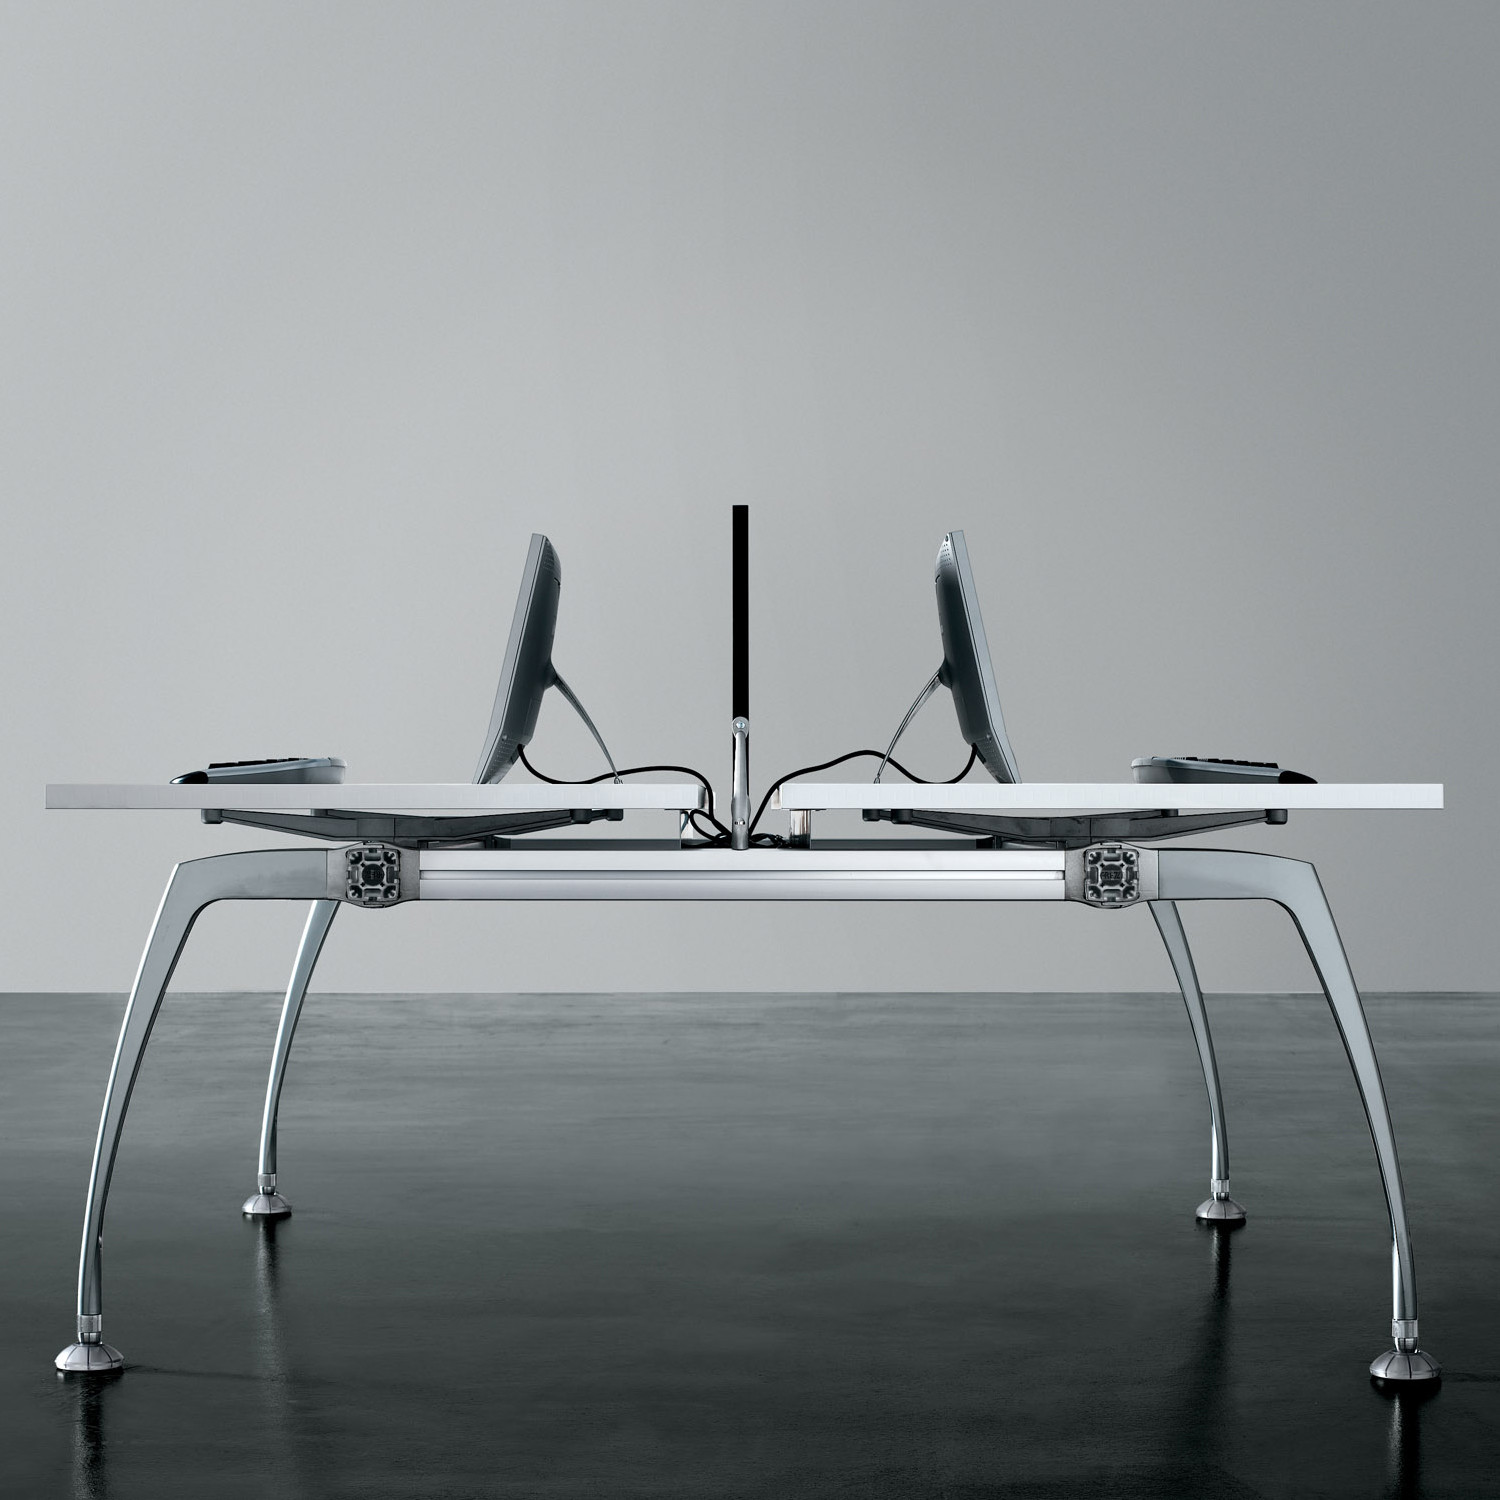 Tiper Bench Desk can be fitted with desk screens upon request